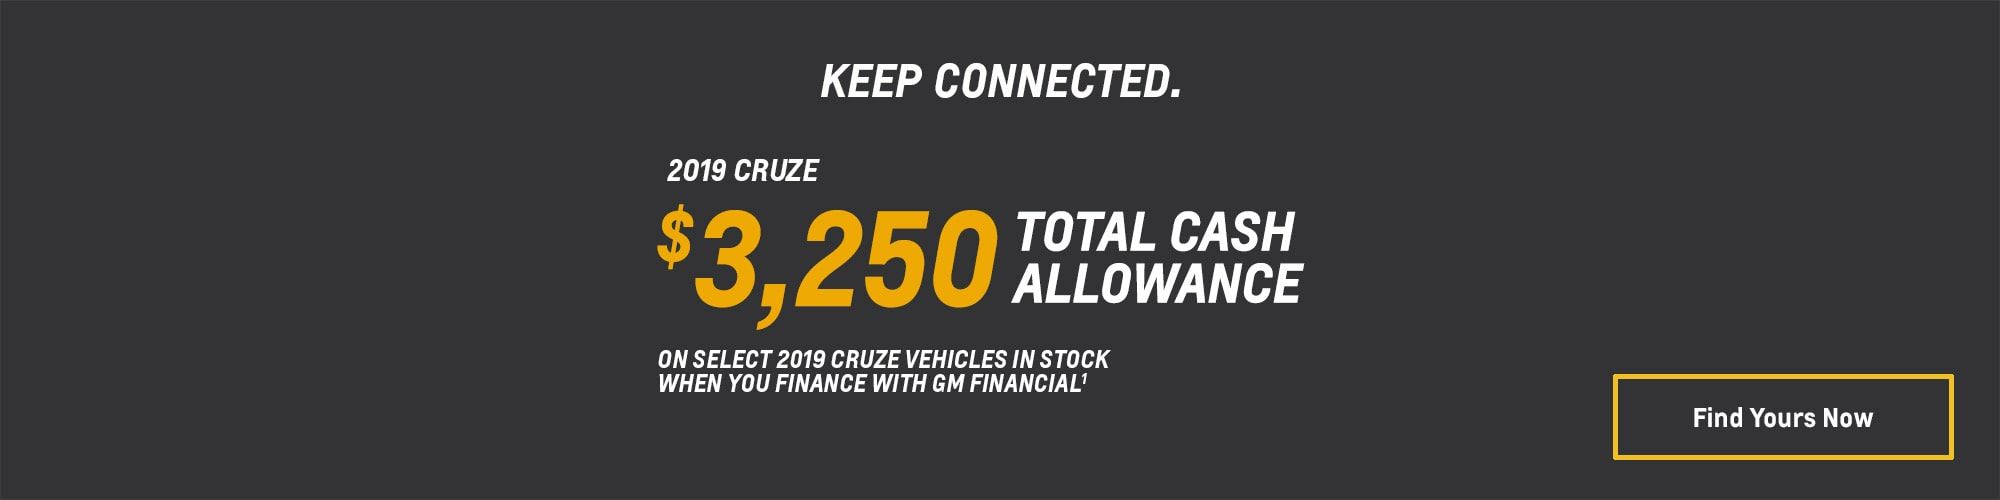 2019 Cruze Compact Car Deals and Offers